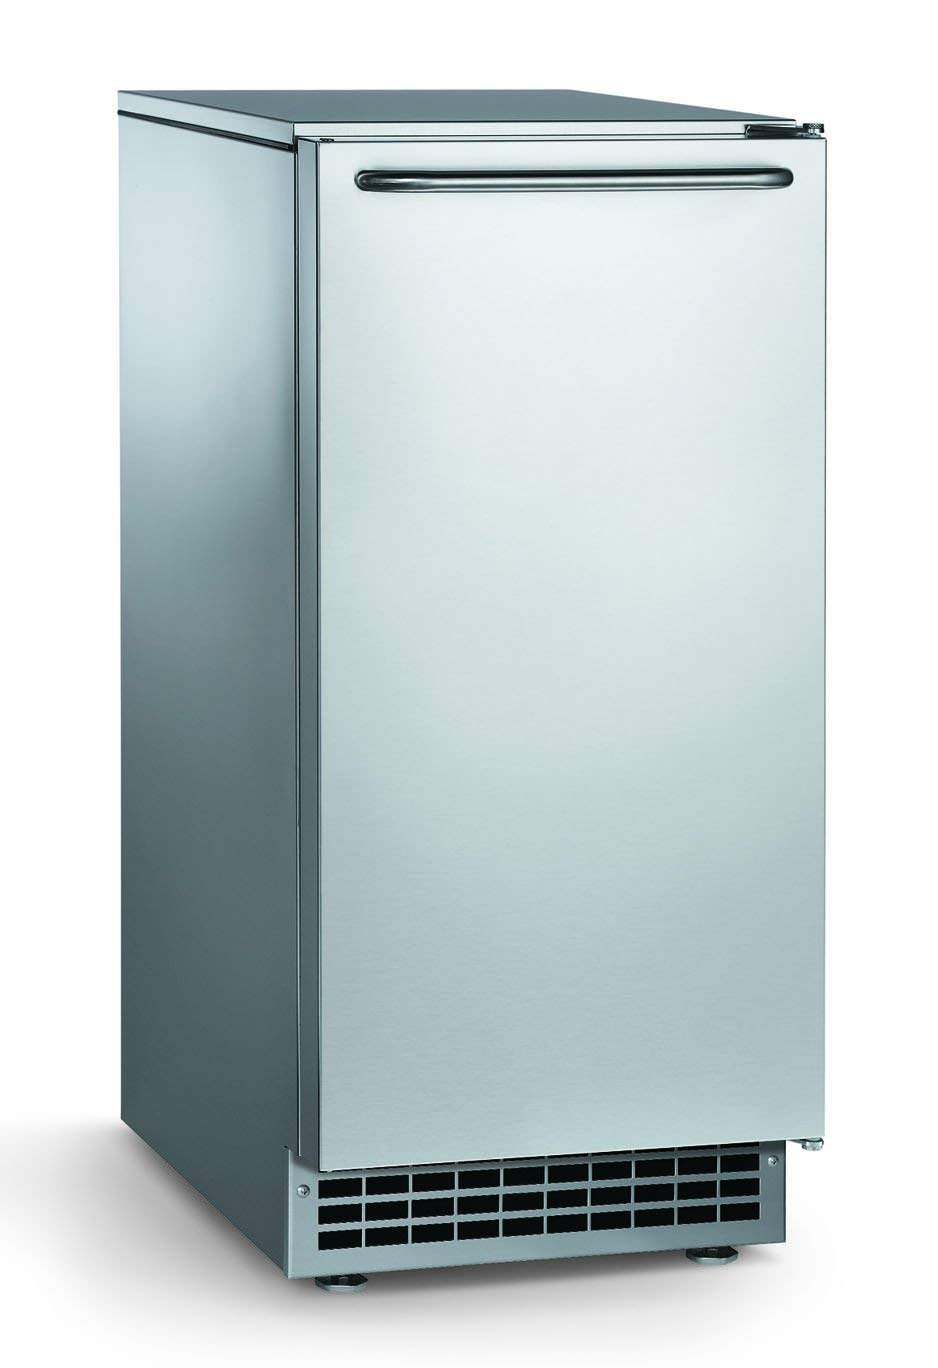 Ice-O-Matic GEMU090 Air Condensing Unit Pearl Self-Contained Ice Machine, Silver